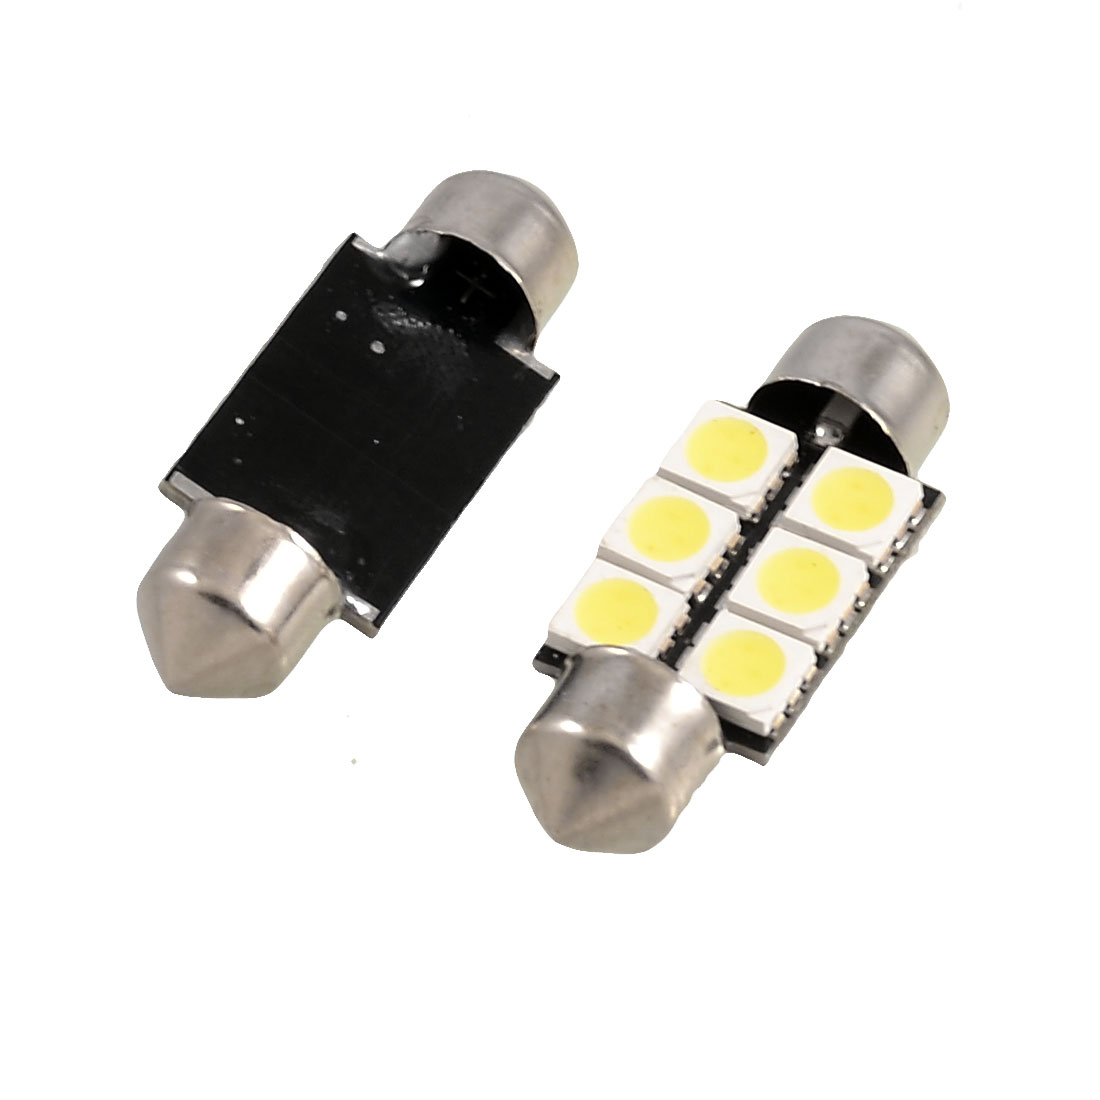 2 x Car 35mm White 5050 6 SMD Festoon LED Light Bulbs DC 12V